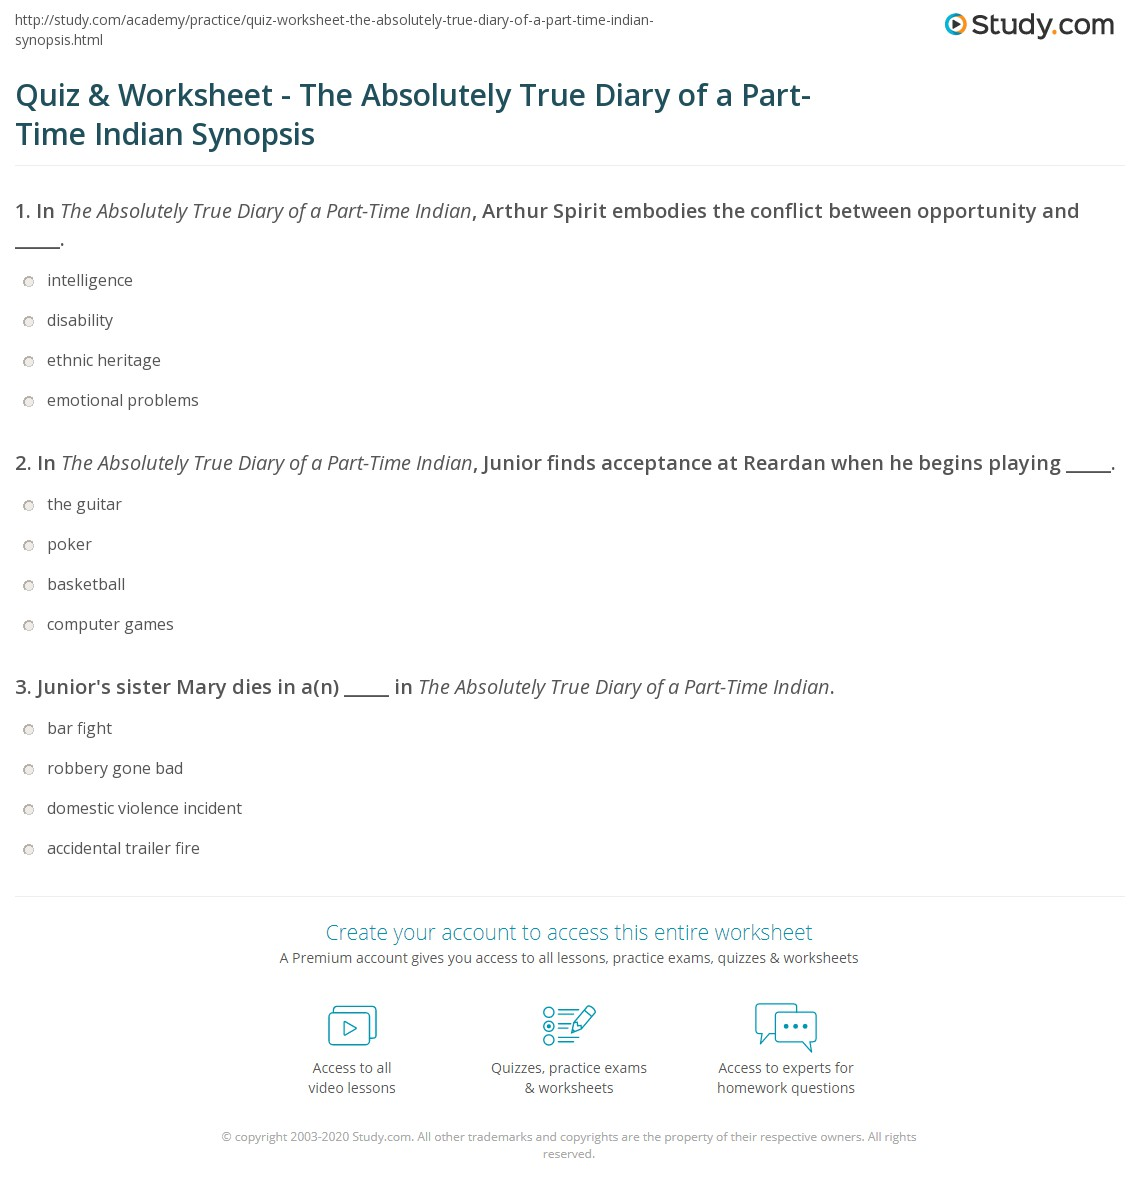 Absolutely True Diary Of A Part Time Indian Quotes Alluring Quiz & Worksheet  The Absolutely True Diary Of A Parttime Indian